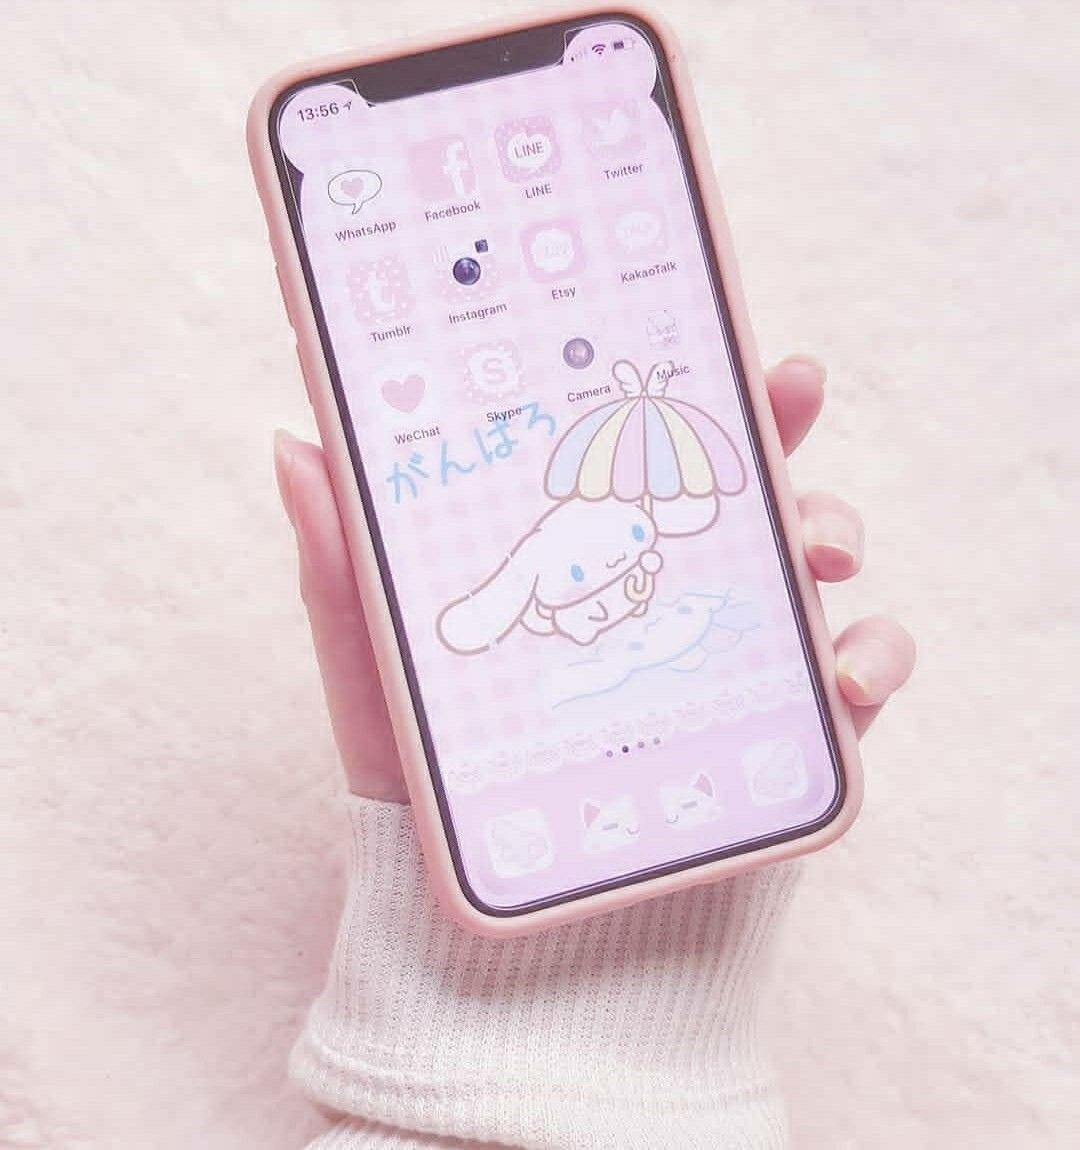 𝒑𝒊𝒏𝒕𝒆𝒓𝒆𝒔𝒕 ♡ Phone themes, Iphone